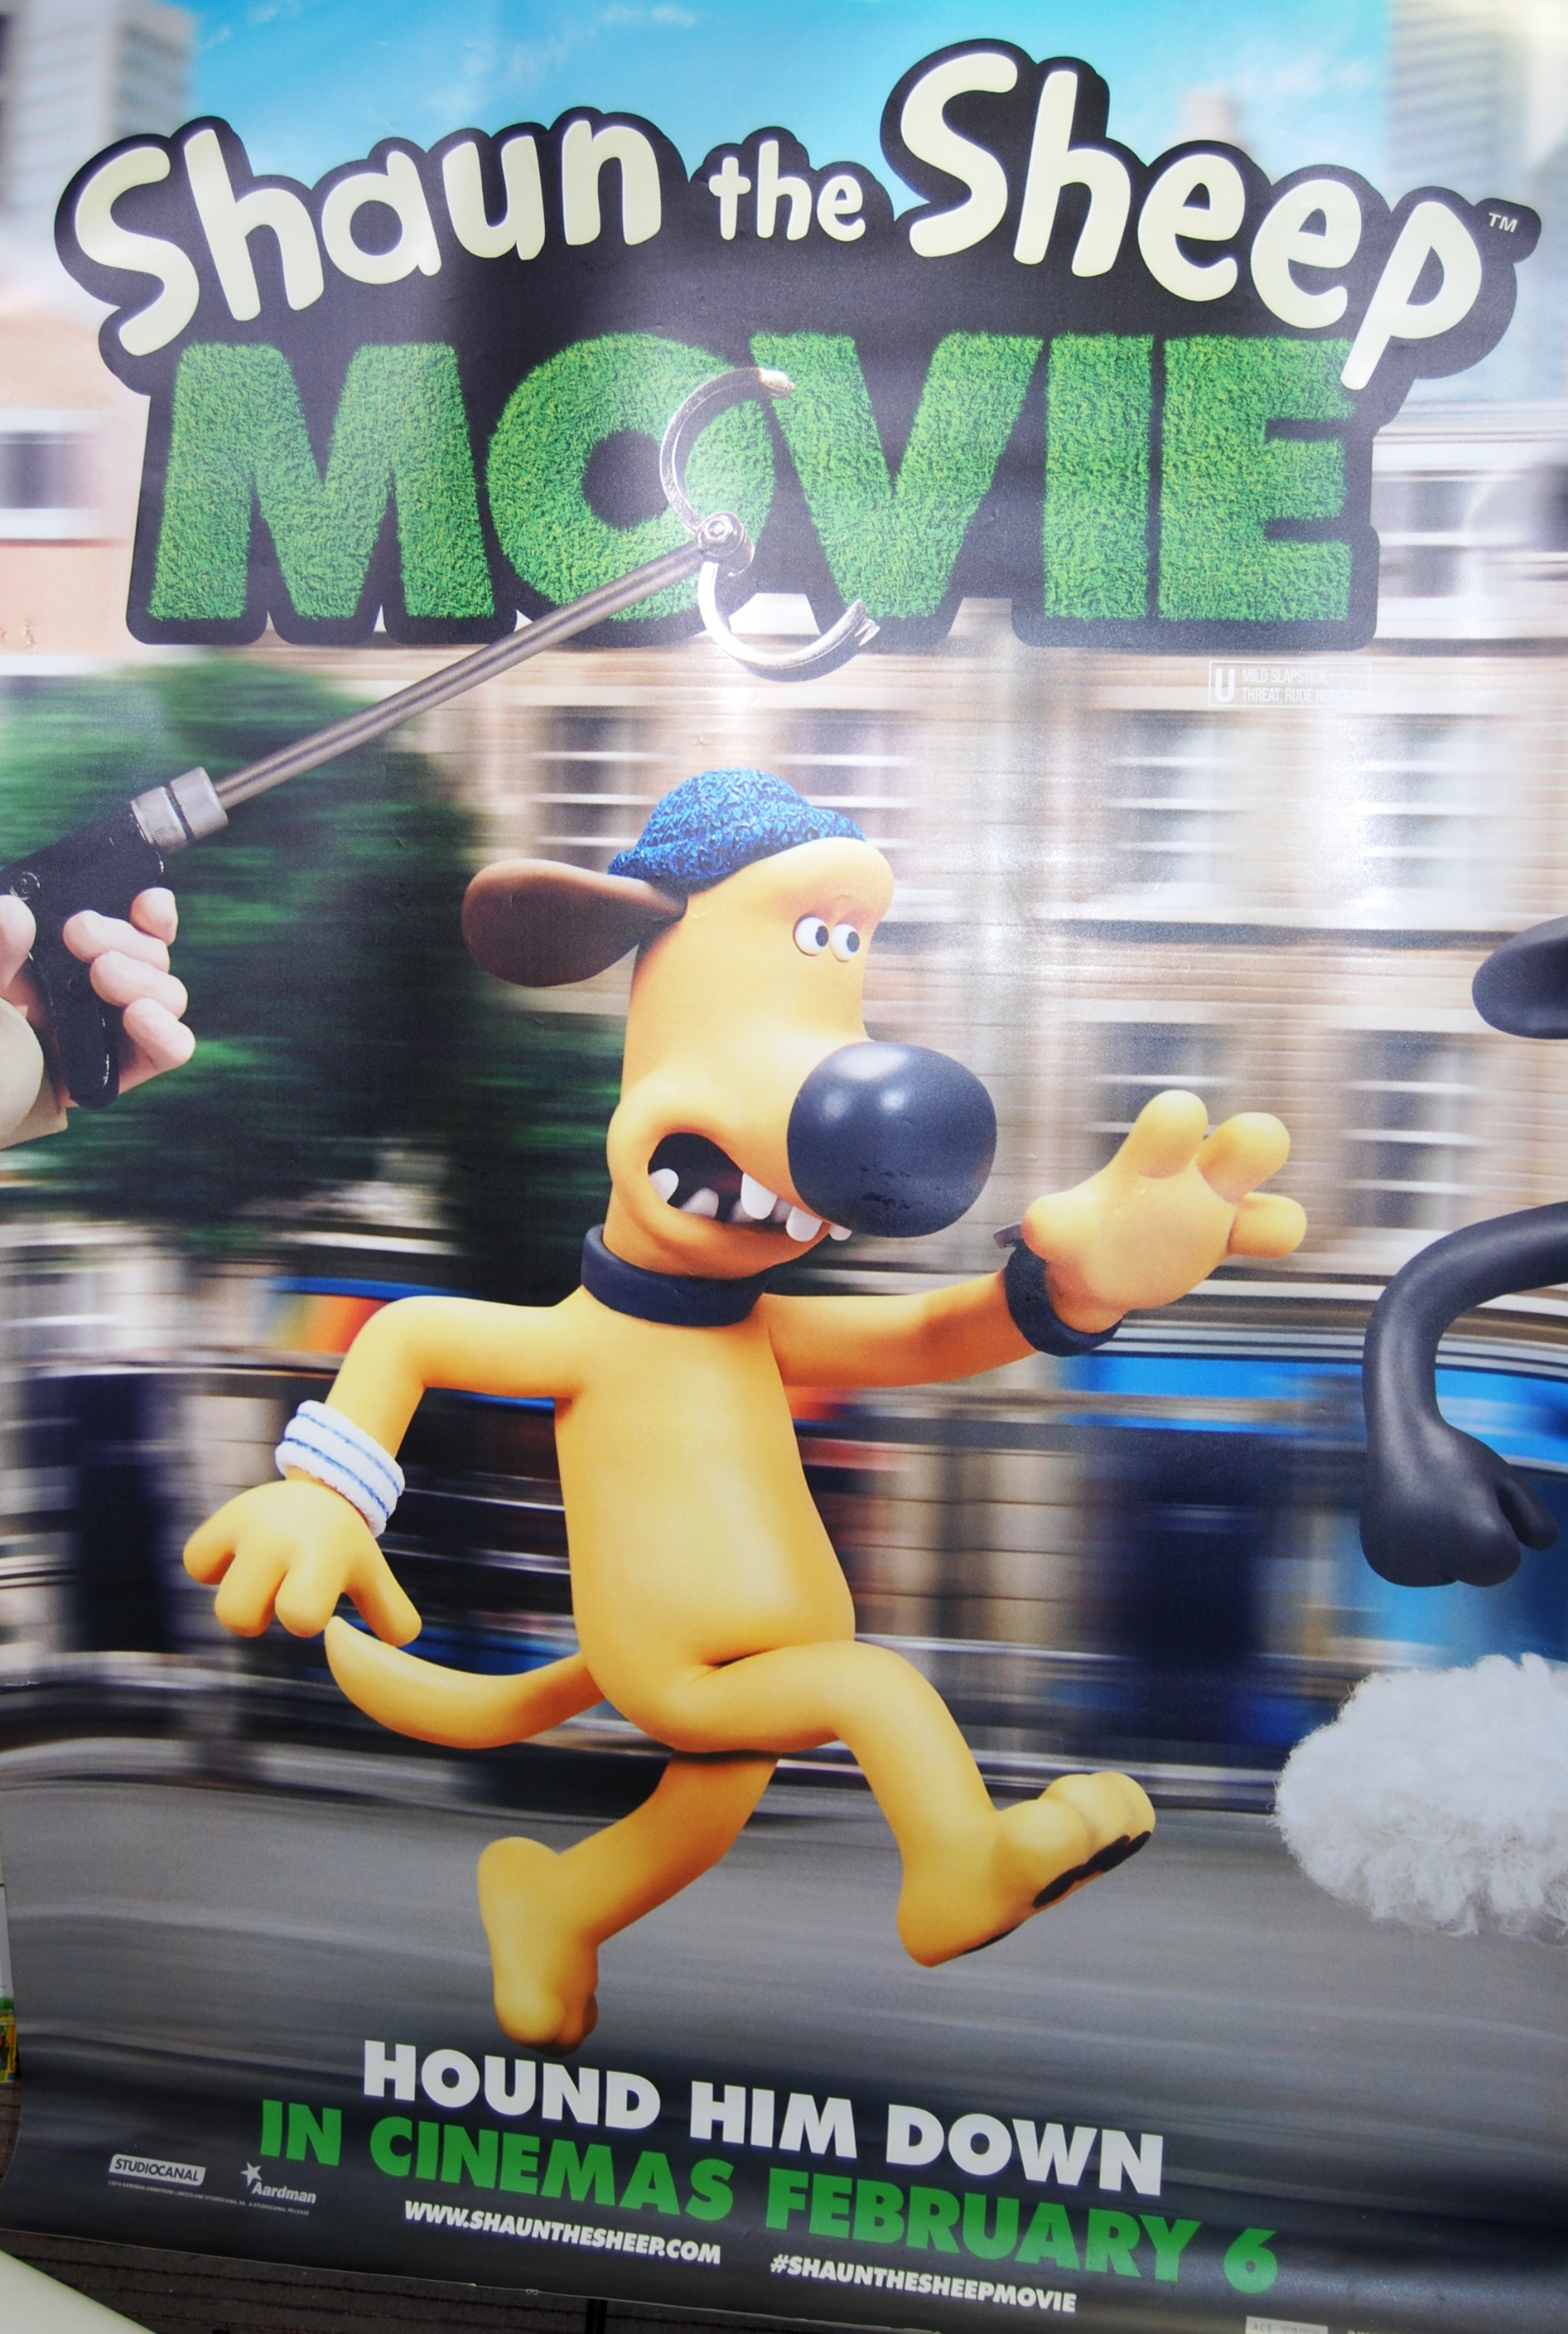 Lot 53 - LARGE SCALE SHAUN THE SHEEP THE MOVIE CINEMA POSTE